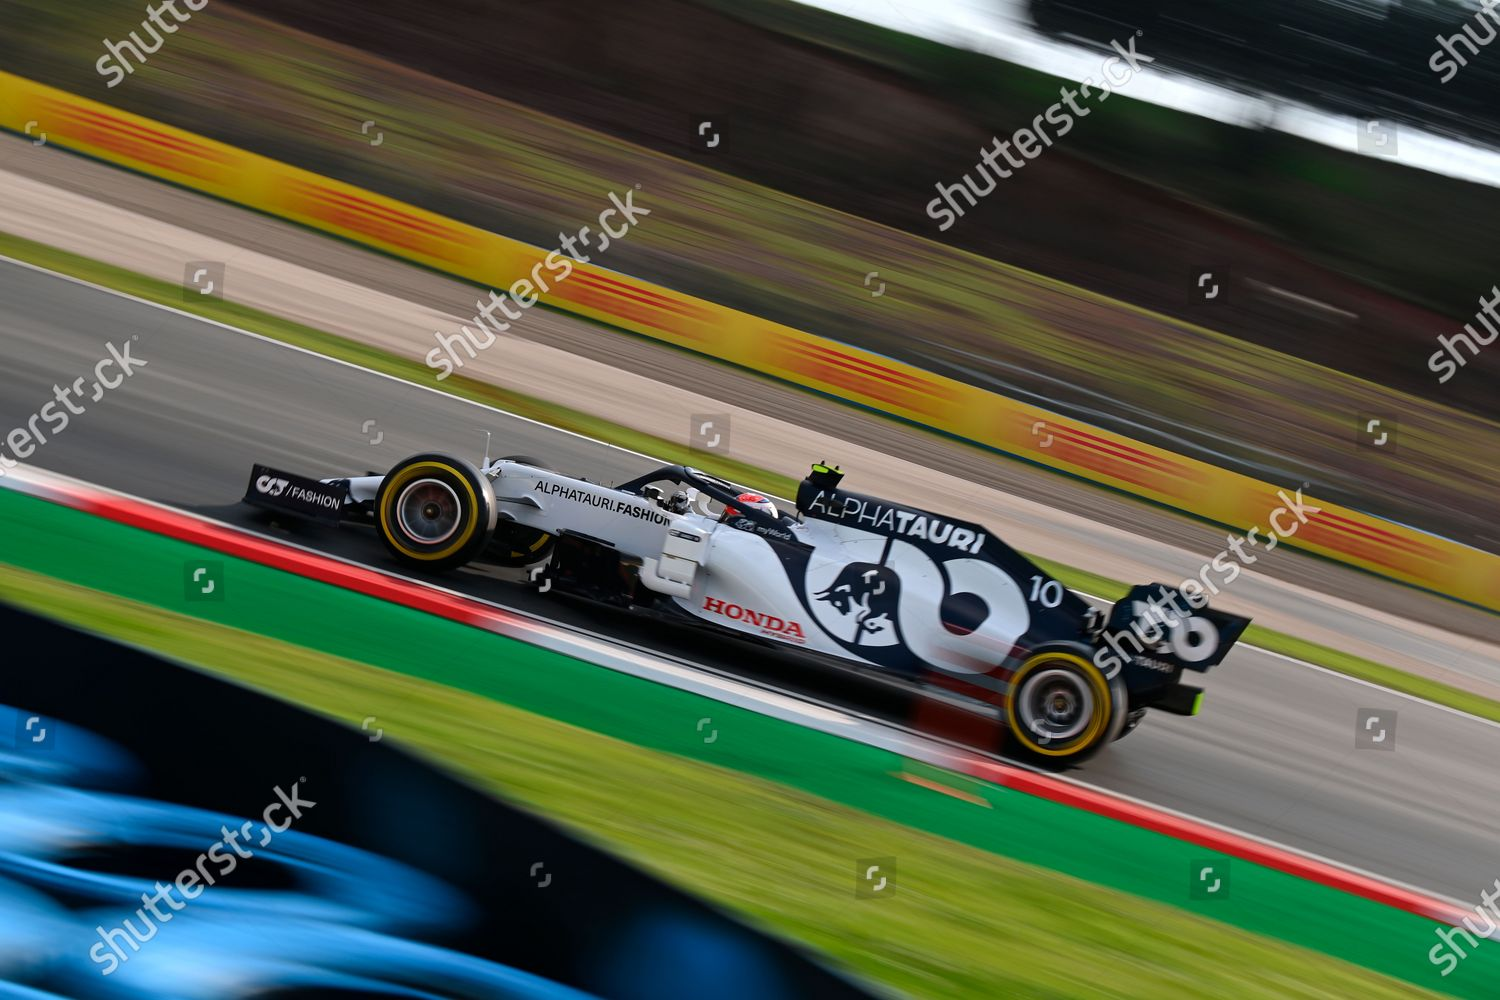 F1 2020 My Driver Career - Sivu 3 F1-gp-auto-racing-istanbul-turkey-shutterstock-editorial-11014529ak